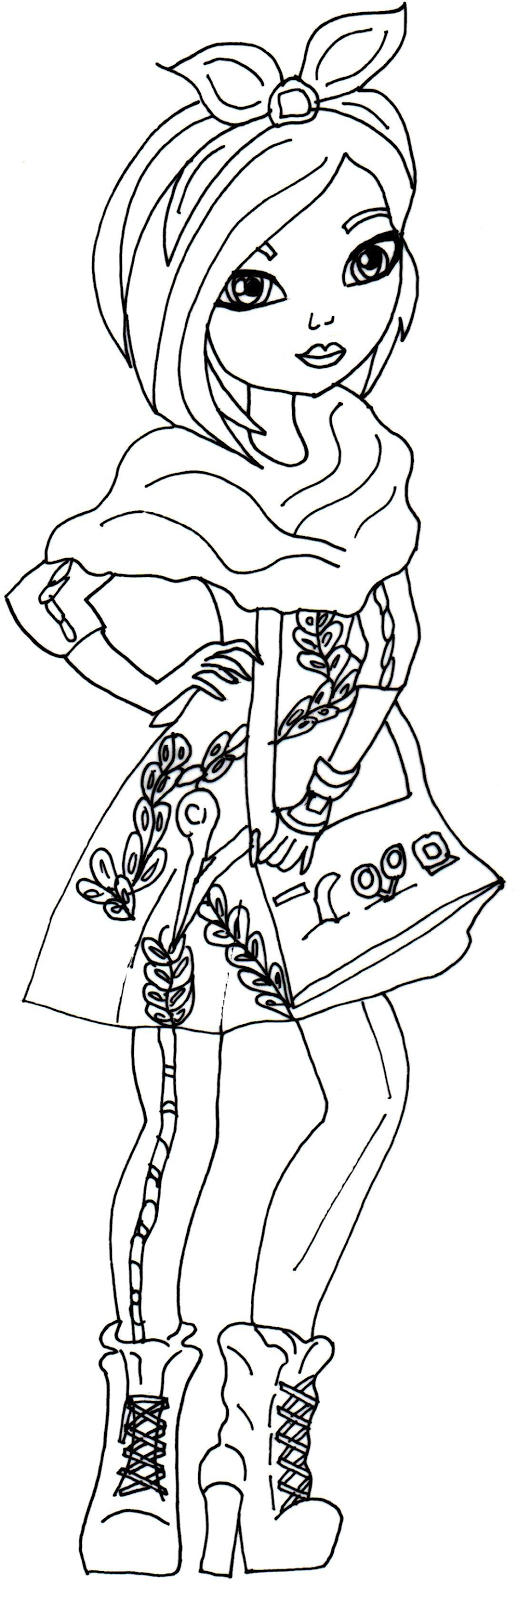 Coloring Pages for Girls Ever after High Download Kids Breathtaking to Print Of Inspiring Monster High Coloring Pages Colouring Sheets Printables Gallery